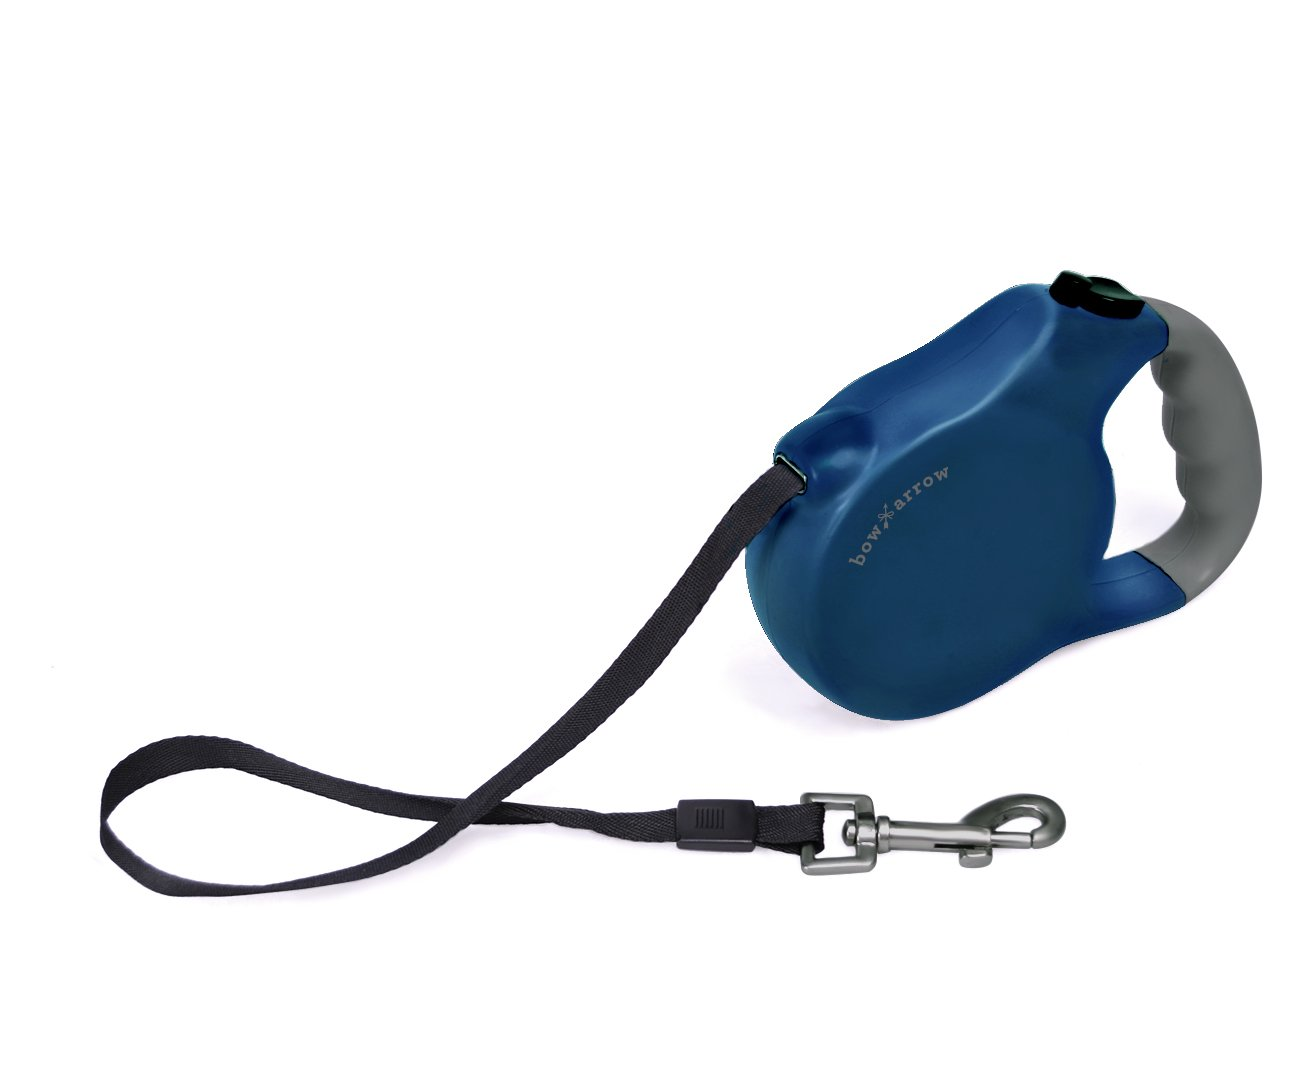 Bow & Arrow Blue Retractable Dog Leash for Dogs Up To 90 lbs With Easy To Use Push Button Brake and Release, Extends 24 Feet Long